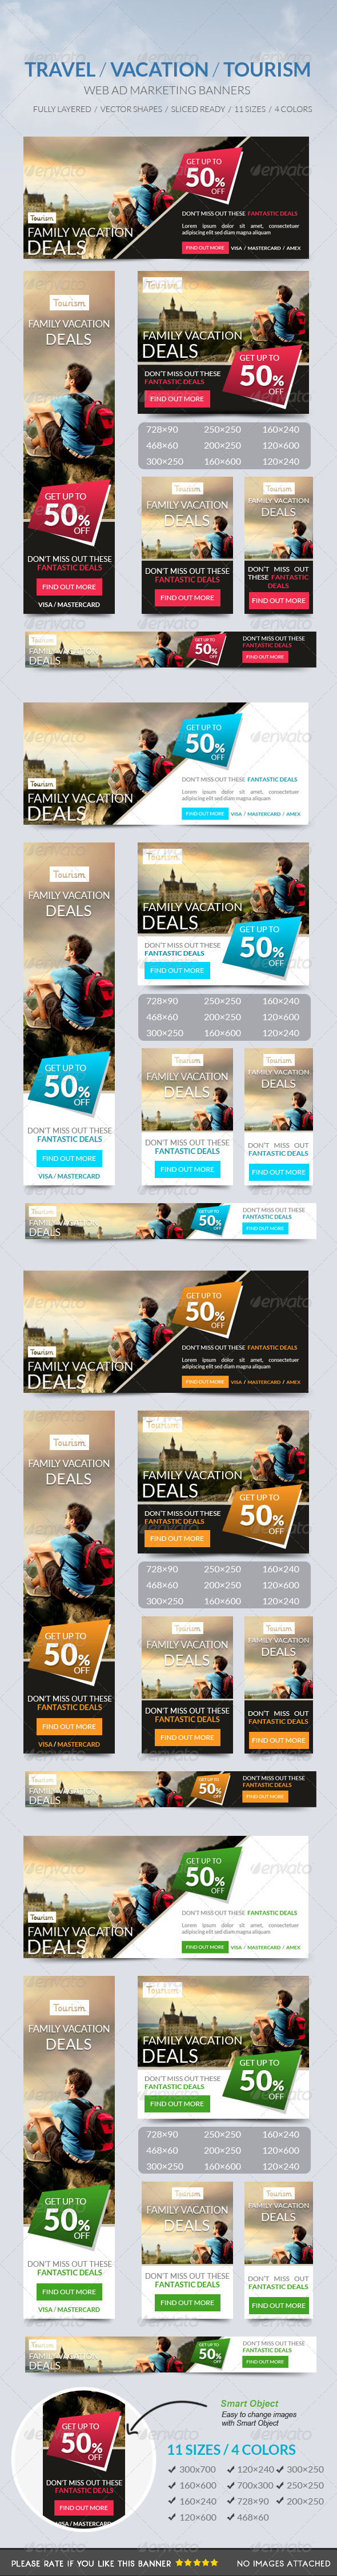 GraphicRiver Travel Vacation Tourism Banner 7447186